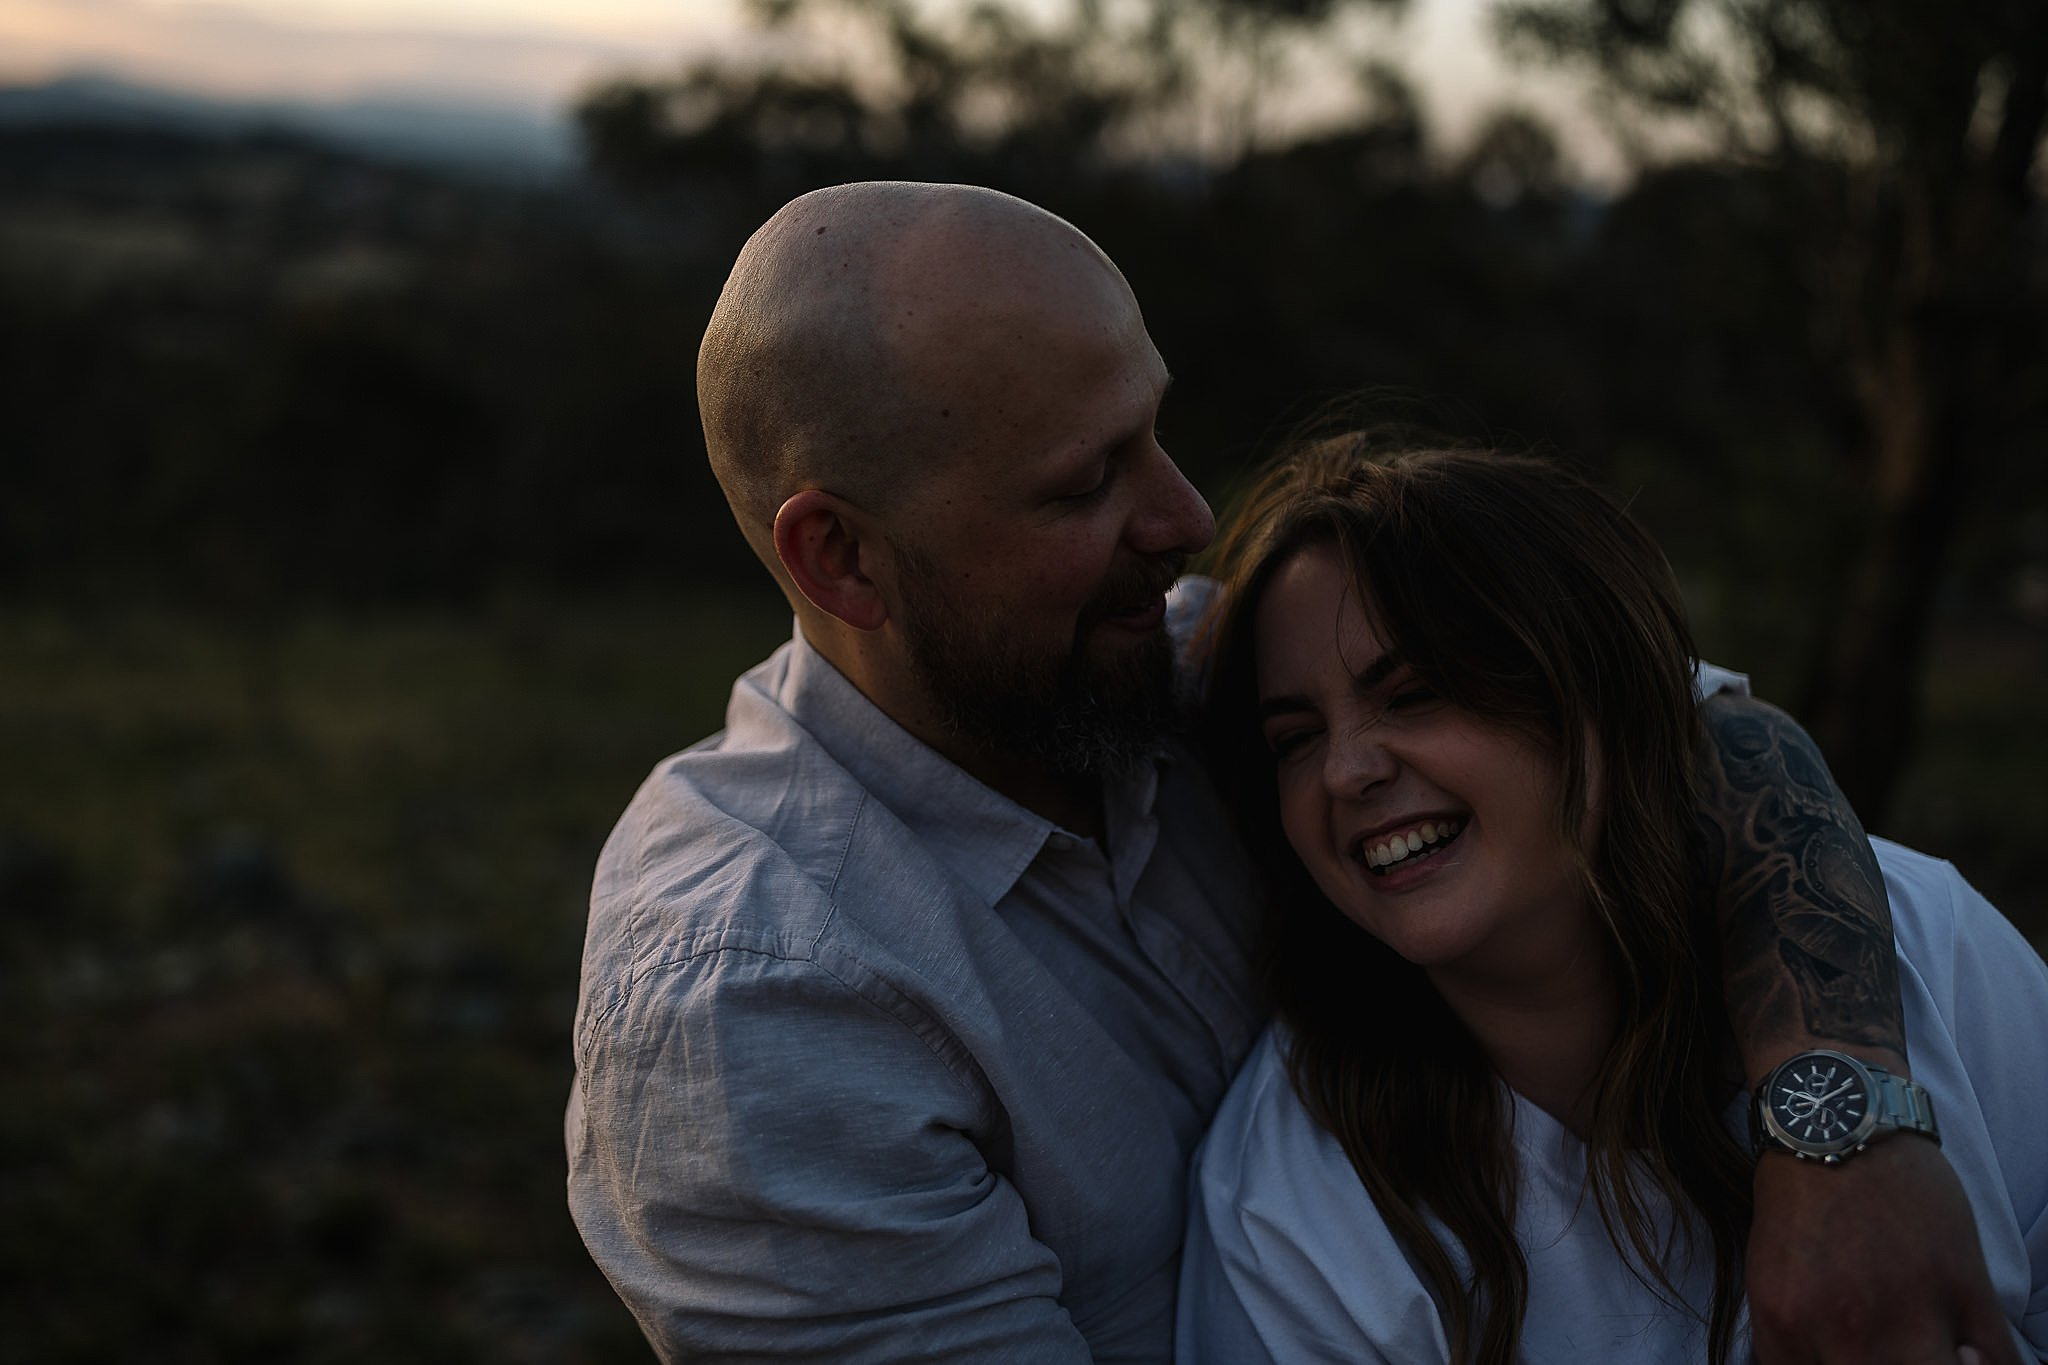 Canberra Portrait Photography,Keepsakephoto by the Keeffes,ACT wedding photographer,ACT weddings,Canberra Wedding Photographer,Canberra Wedding Photography,canberra weddings,Engagement,Engagement Photography,